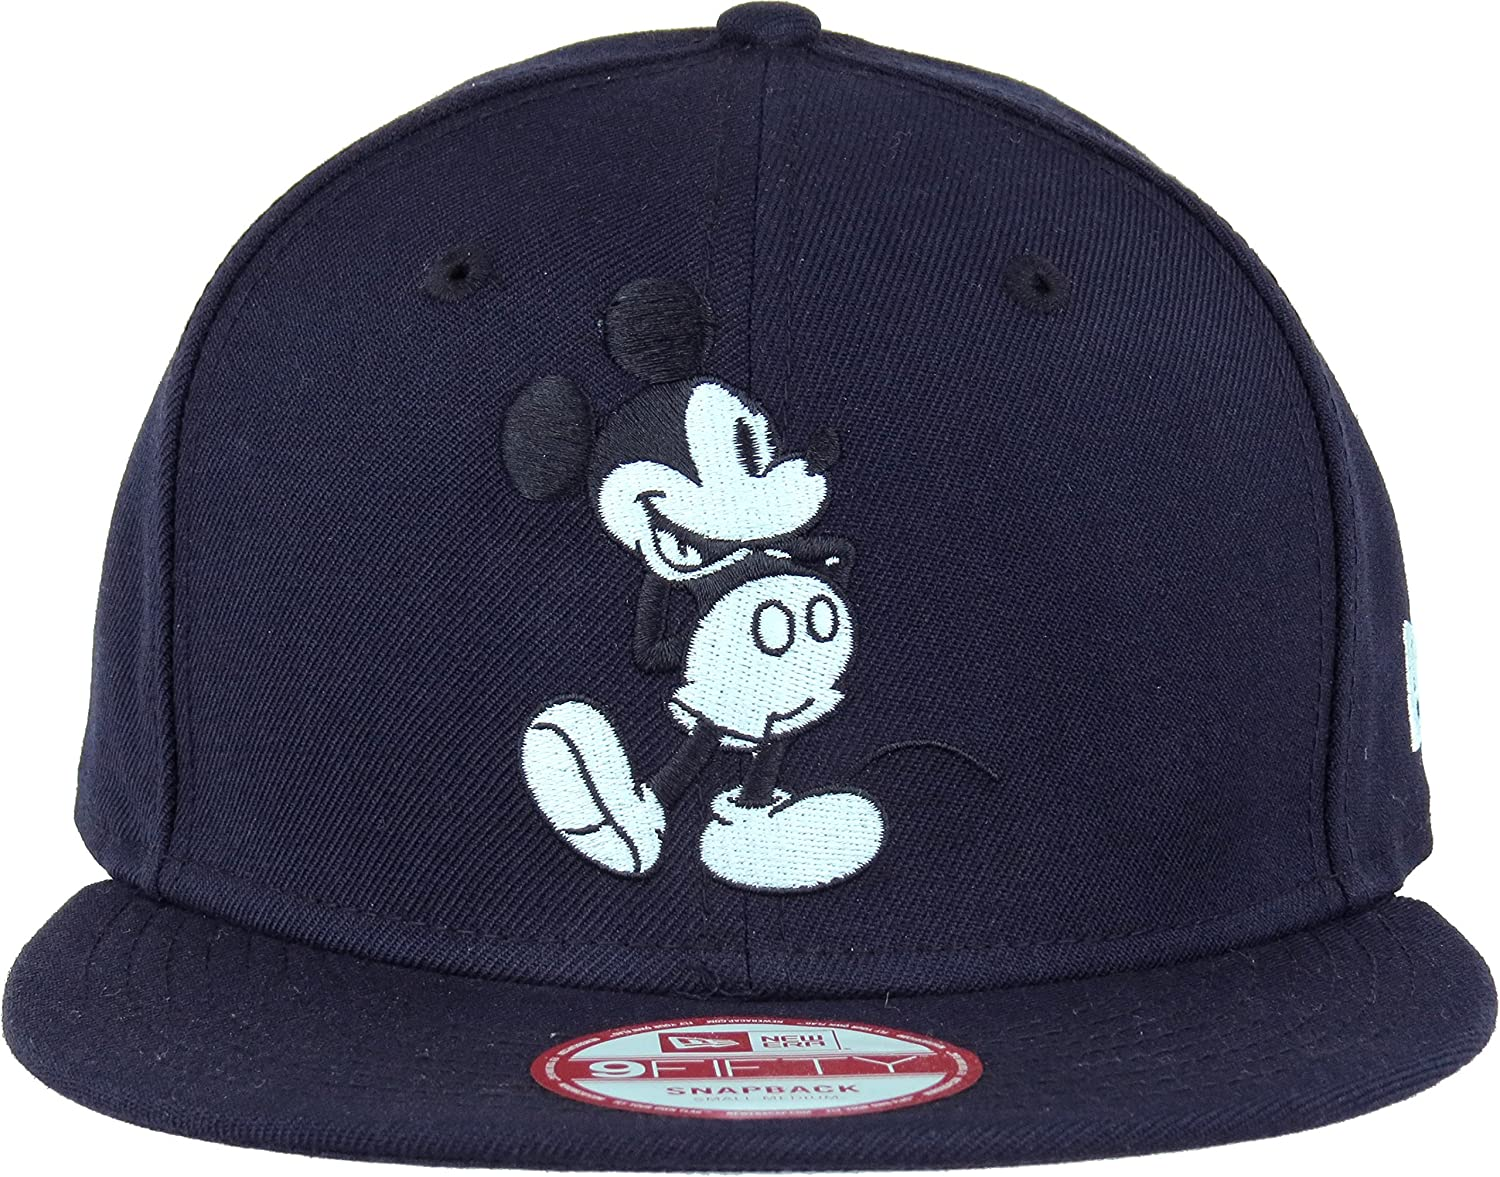 newest 908b0 ce58a Amazon.com  New Era Mickey Mouse CL Navy Snapback Cap 9fifty Special  Limited Edition Disney  Clothing